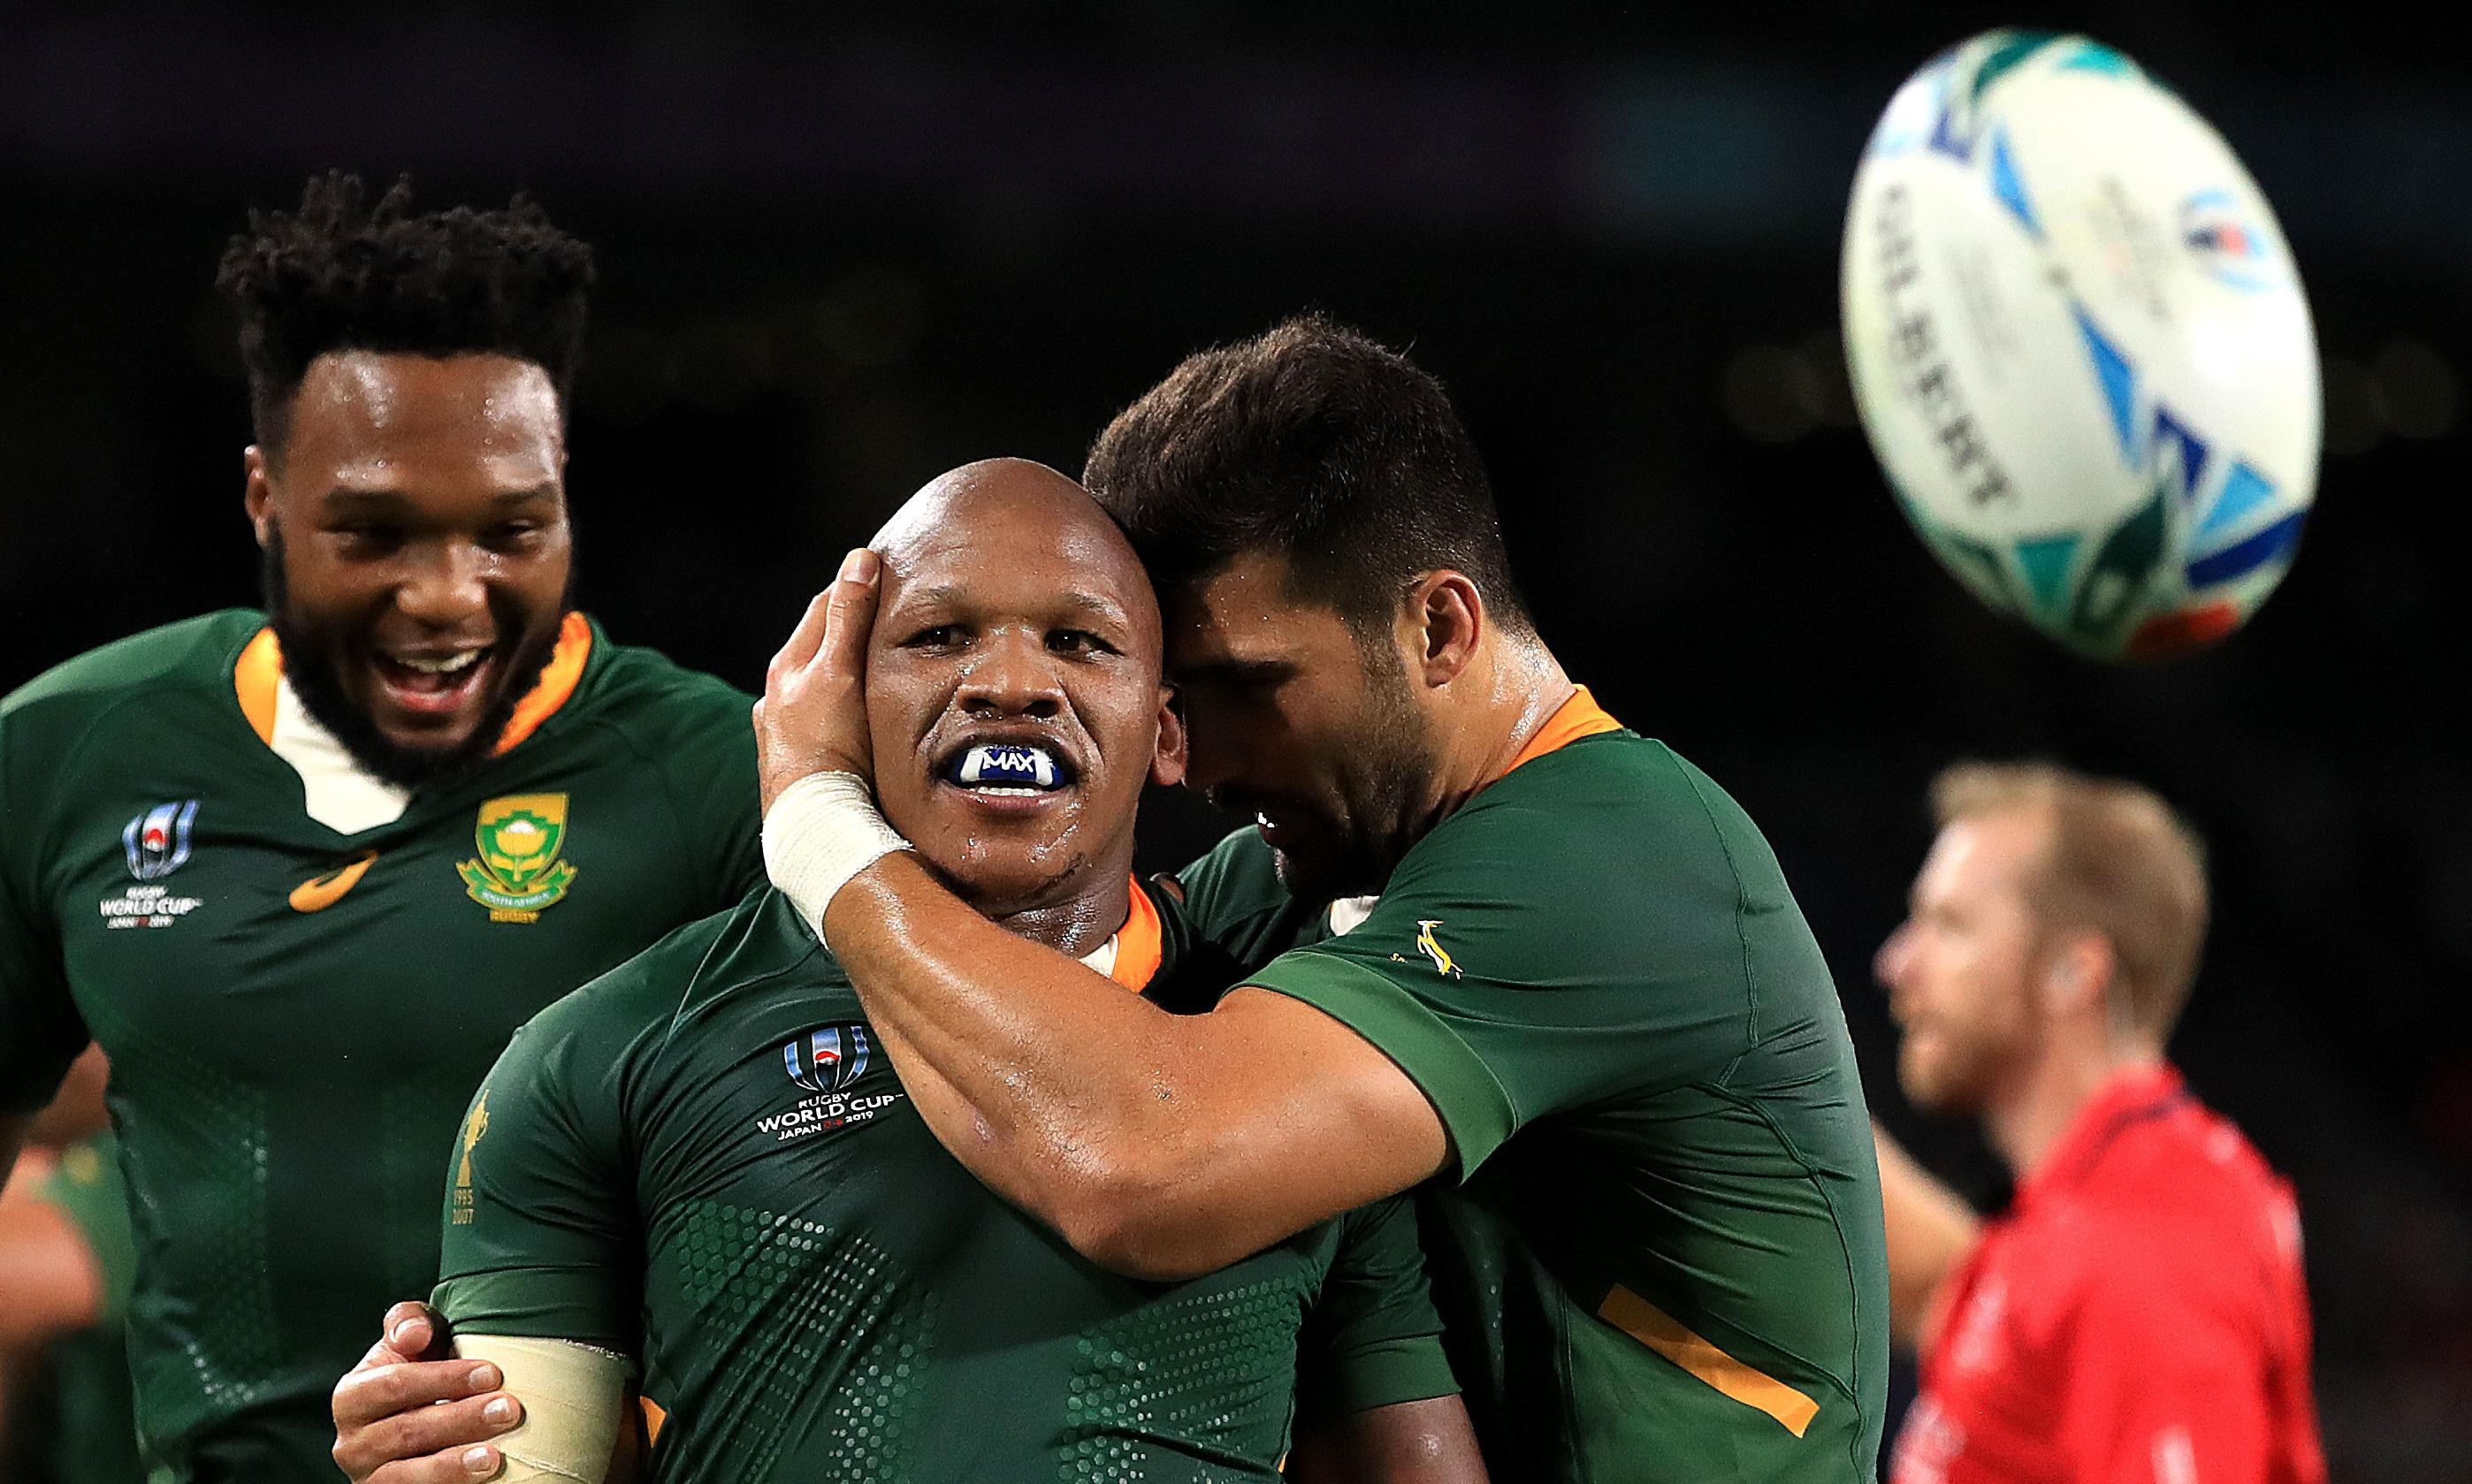 'Skin colour does not matter': Bongi Mbonambi on the new Springboks